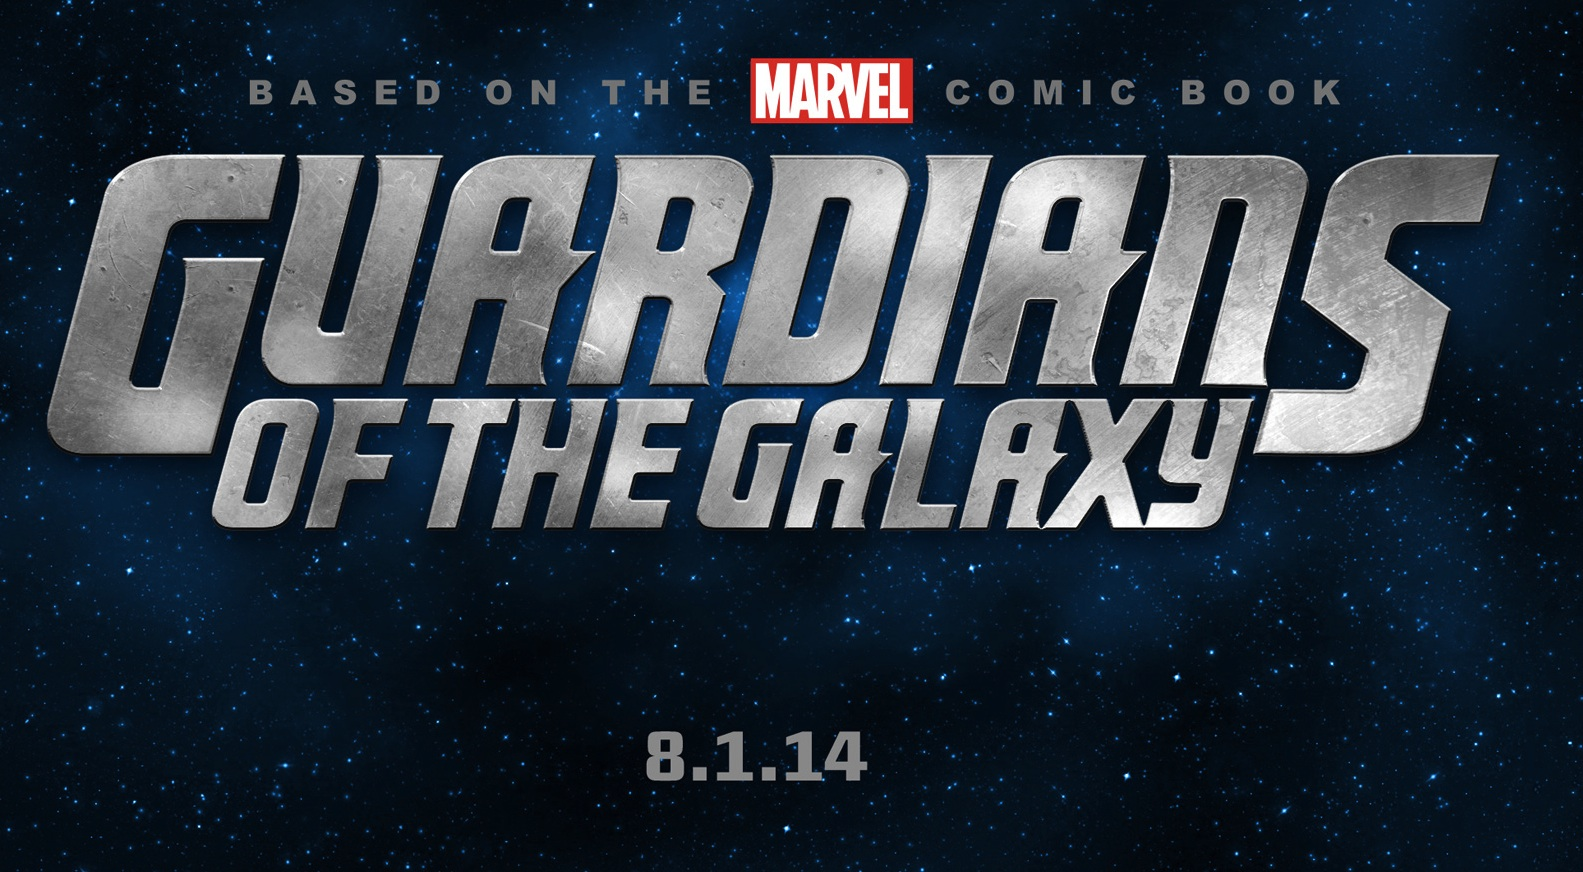 GUARDIANS_OF_THE_GALAXY_AUGUST_2014.jpg